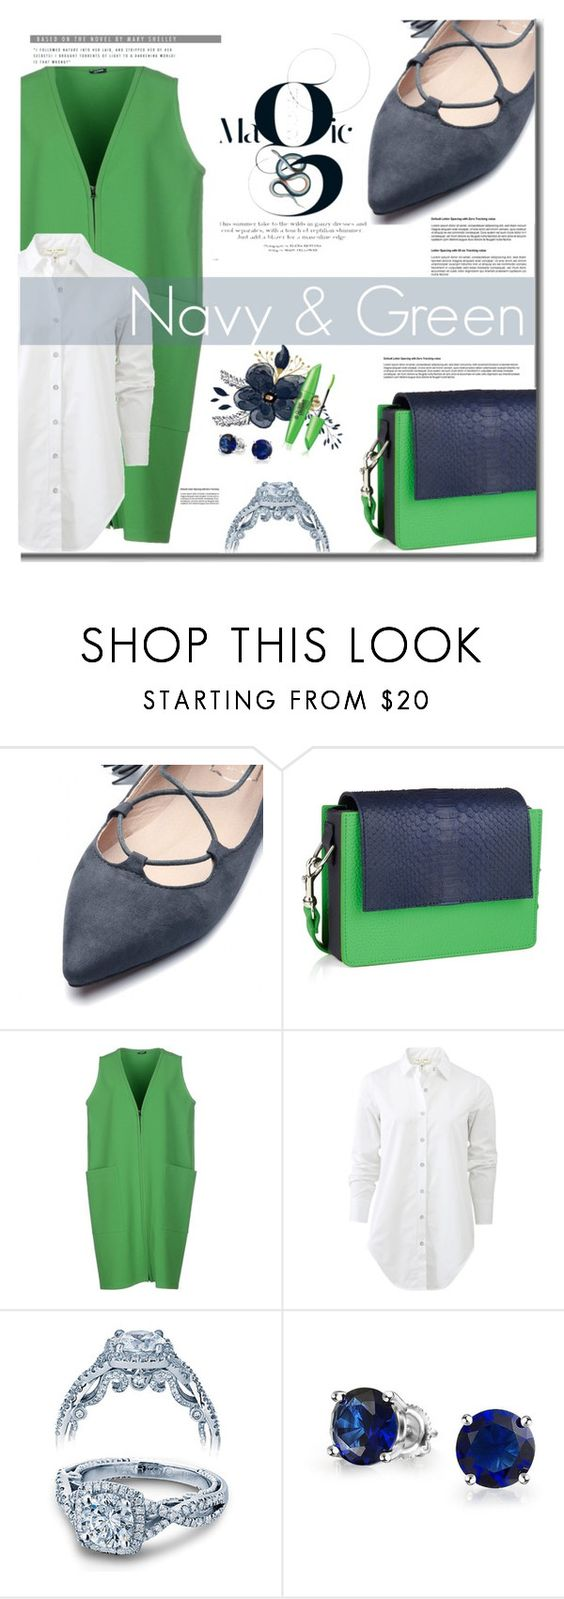 """Navy & Green"" by mslewis6 ❤ liked on Polyvore featuring Jil Sander Navy, rag & bone, Baku, Verragio and Bling Jewelry"